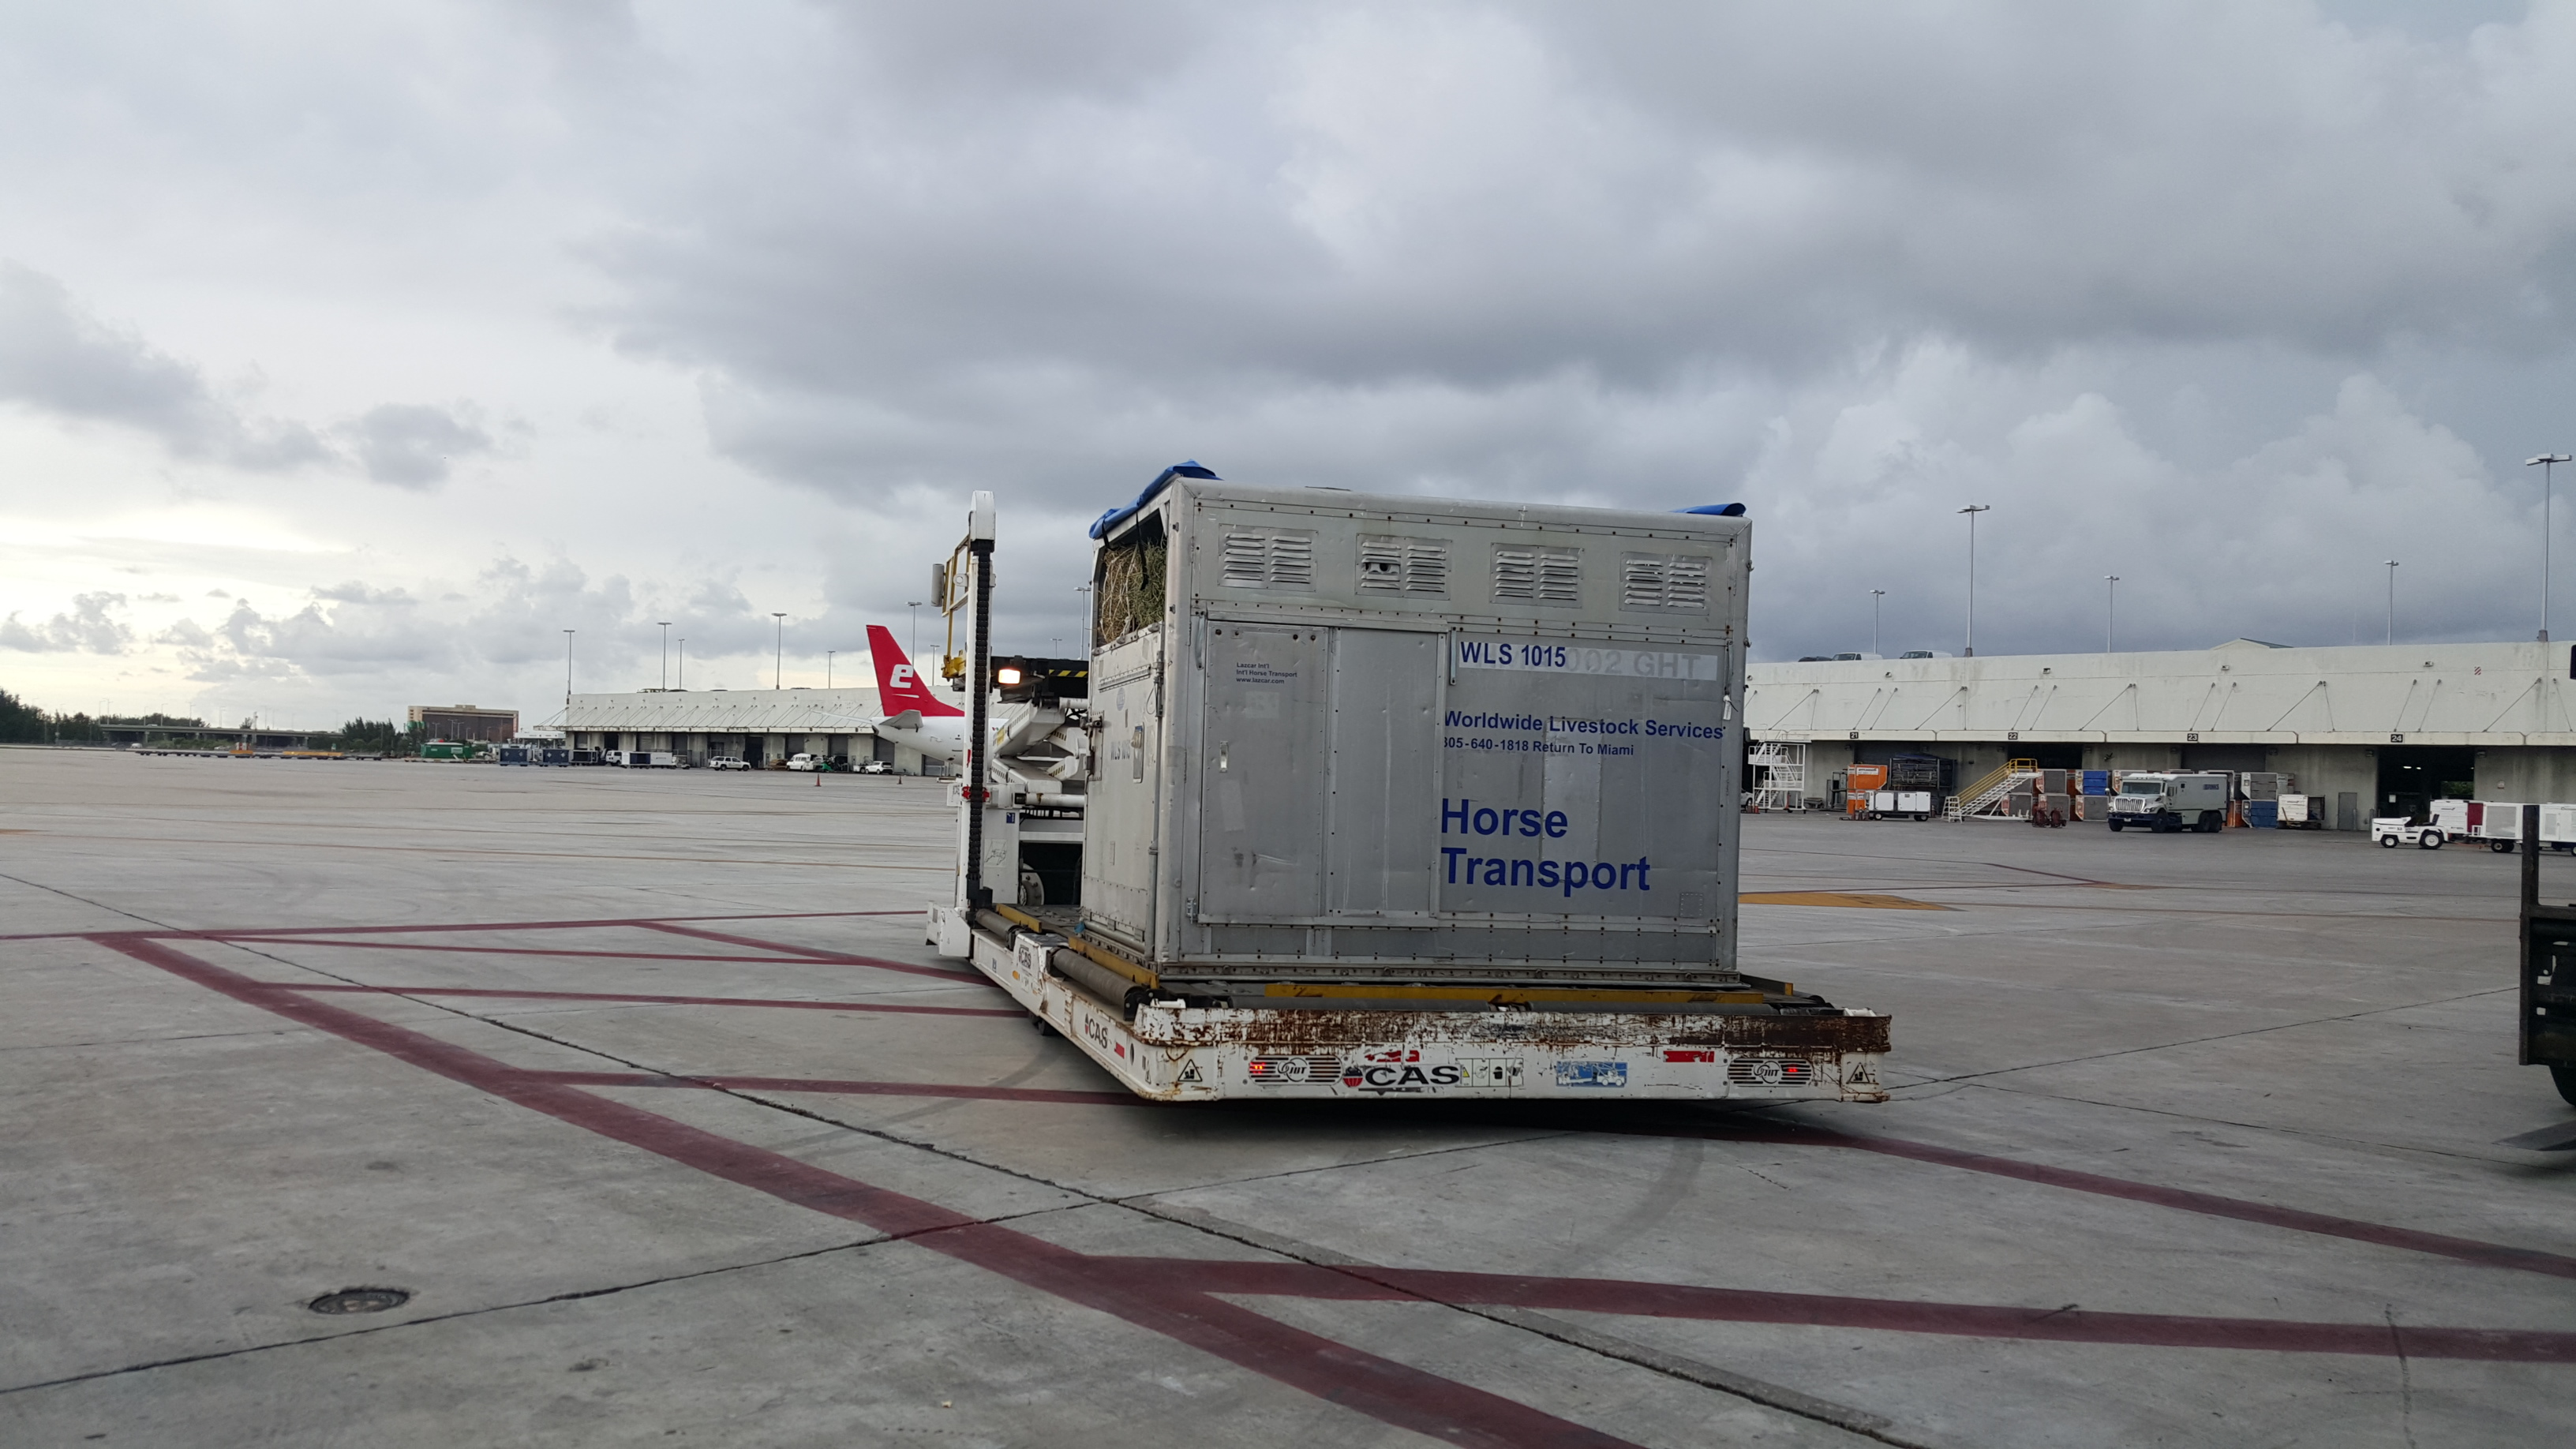 horse air transport pallet